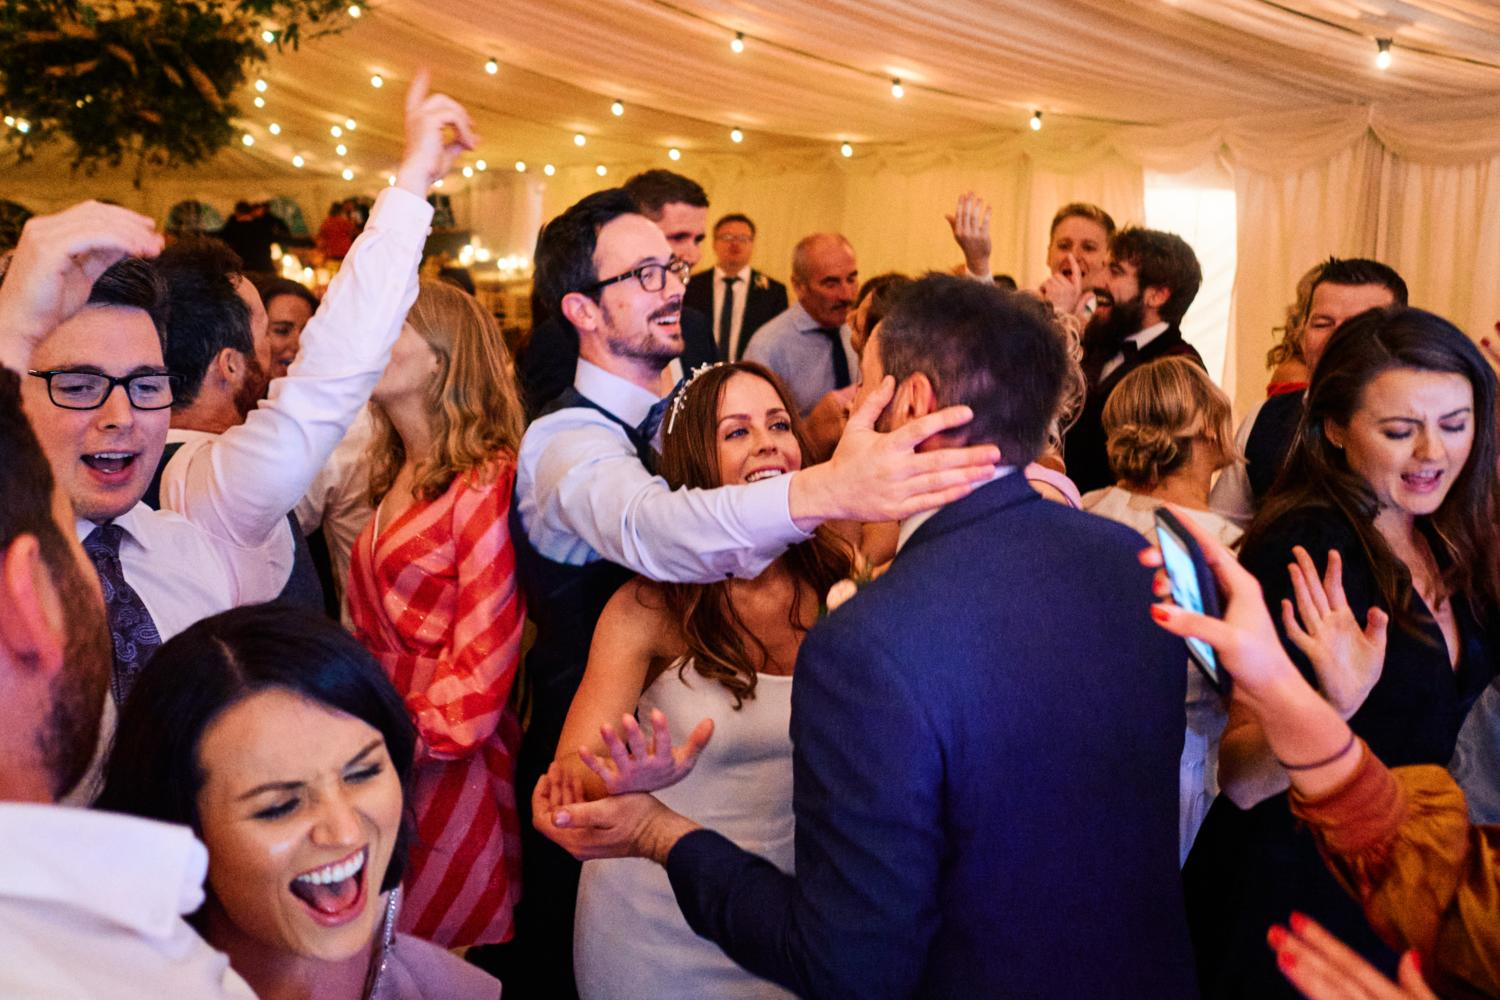 Wedding guests embrace the bride and groom at a wedding